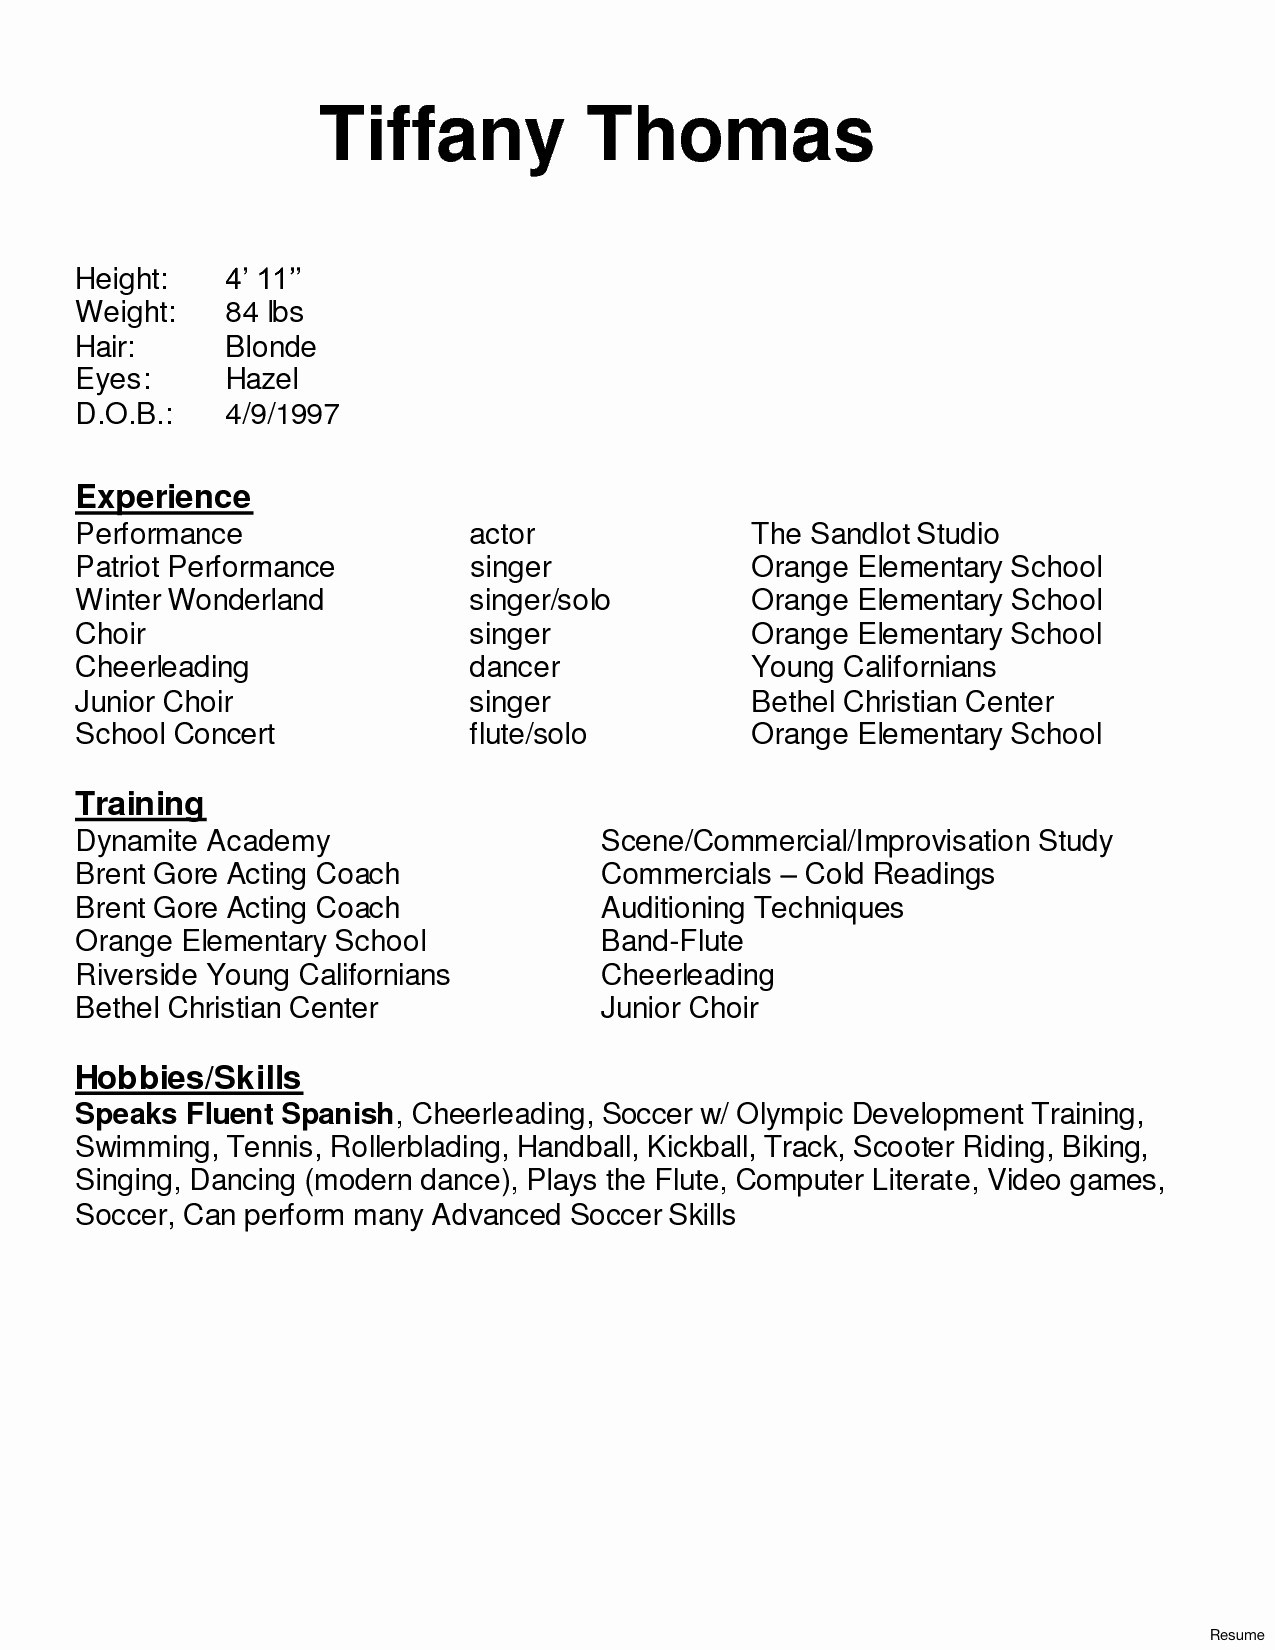 Theatre Resume Template Google Docs - Puter Literacy Skills Examples for Resume Lovely Free Acting